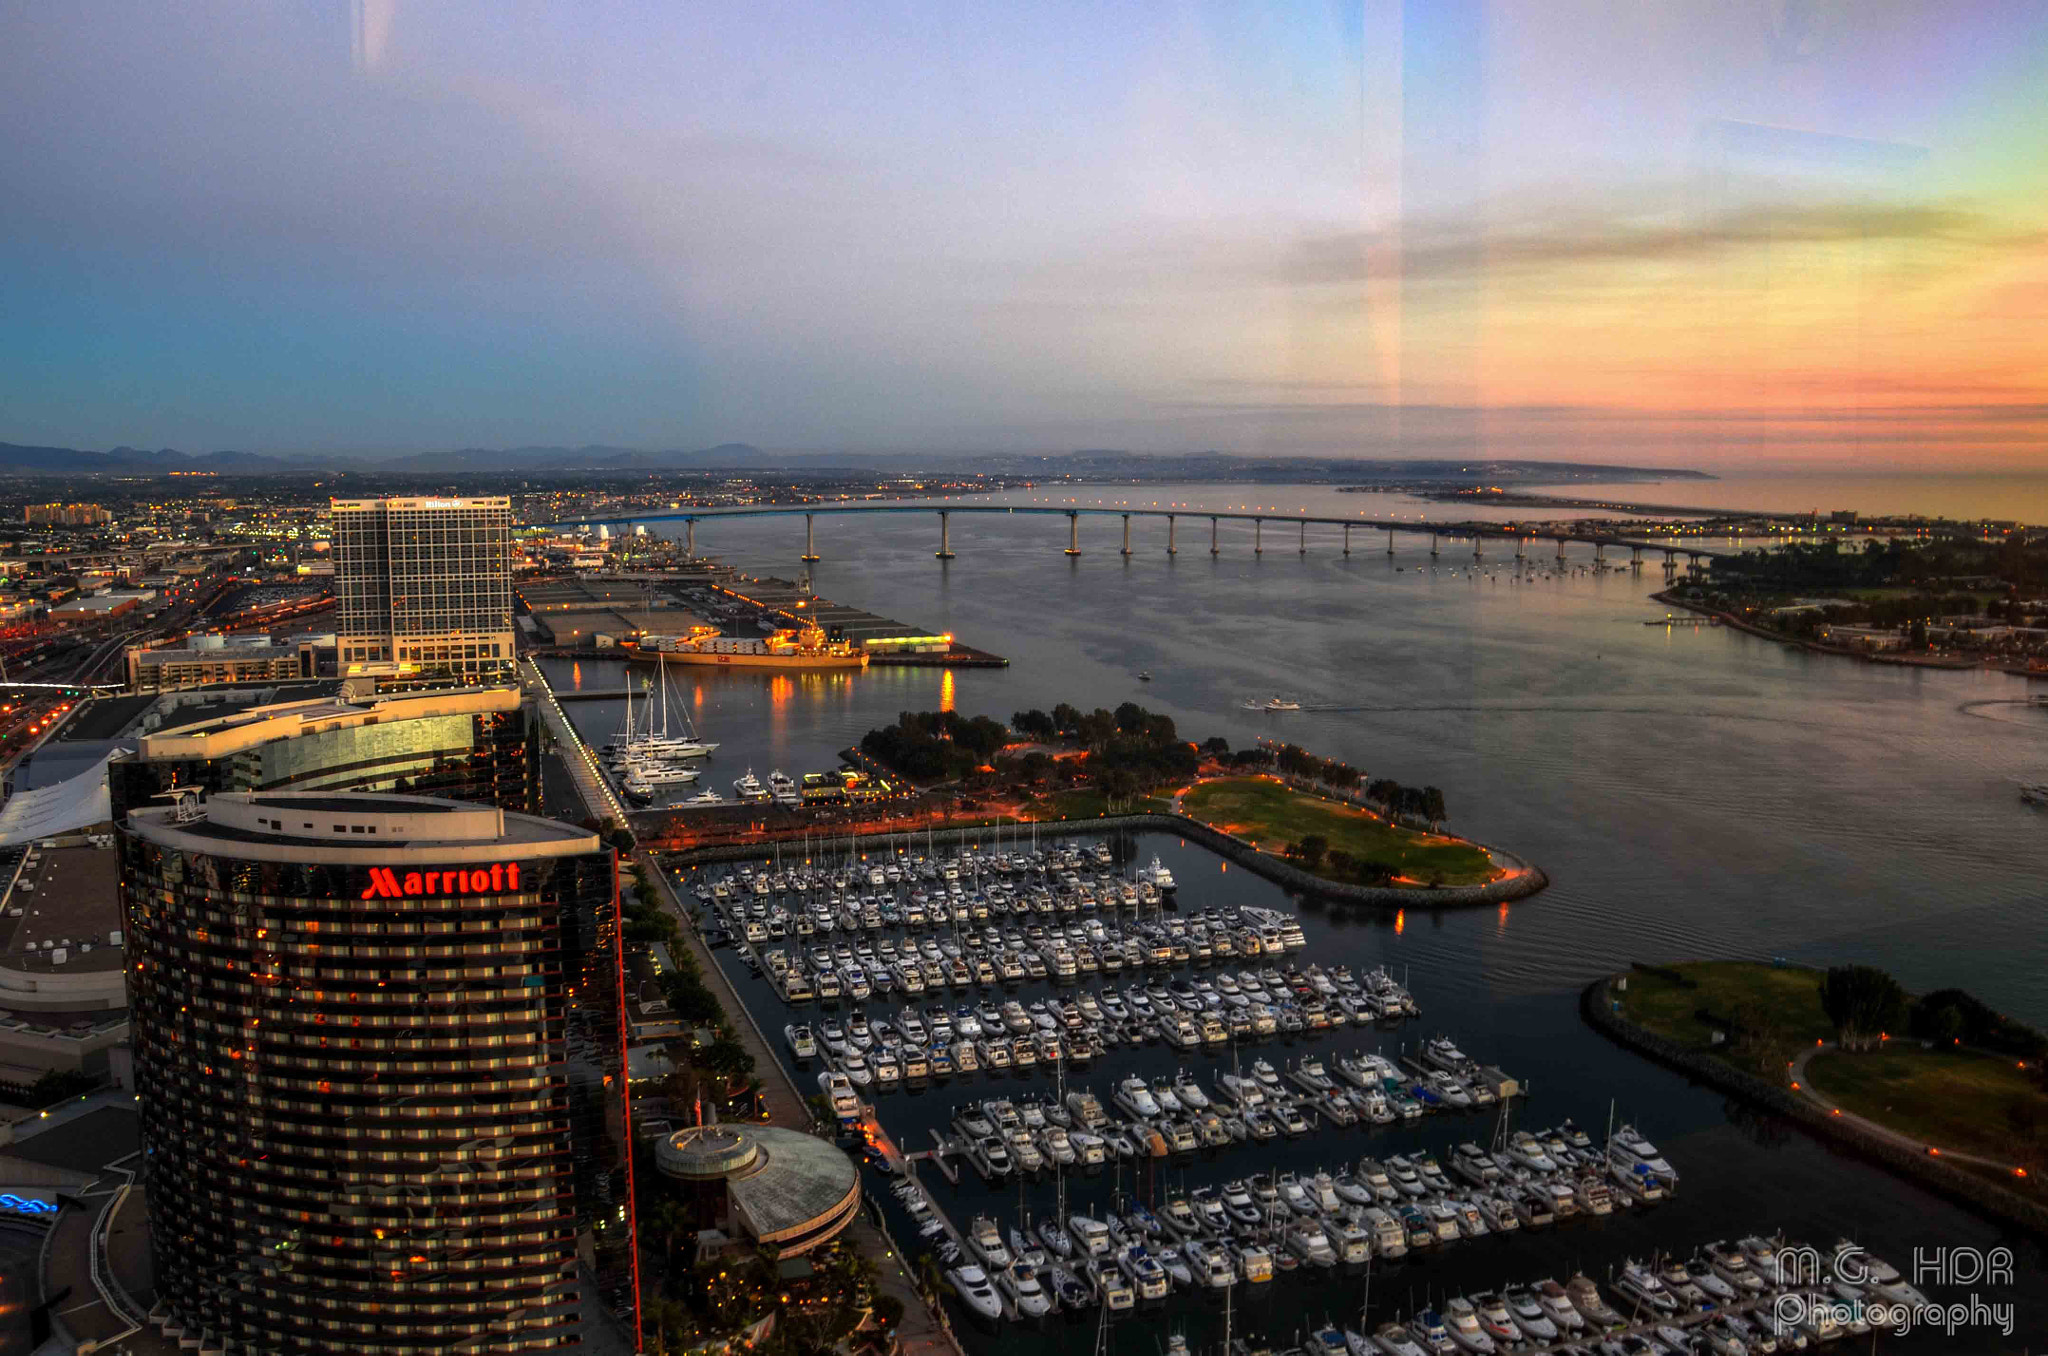 Photograph San Diego Coronado Bay Bridge by Michael Gerlt on 500px